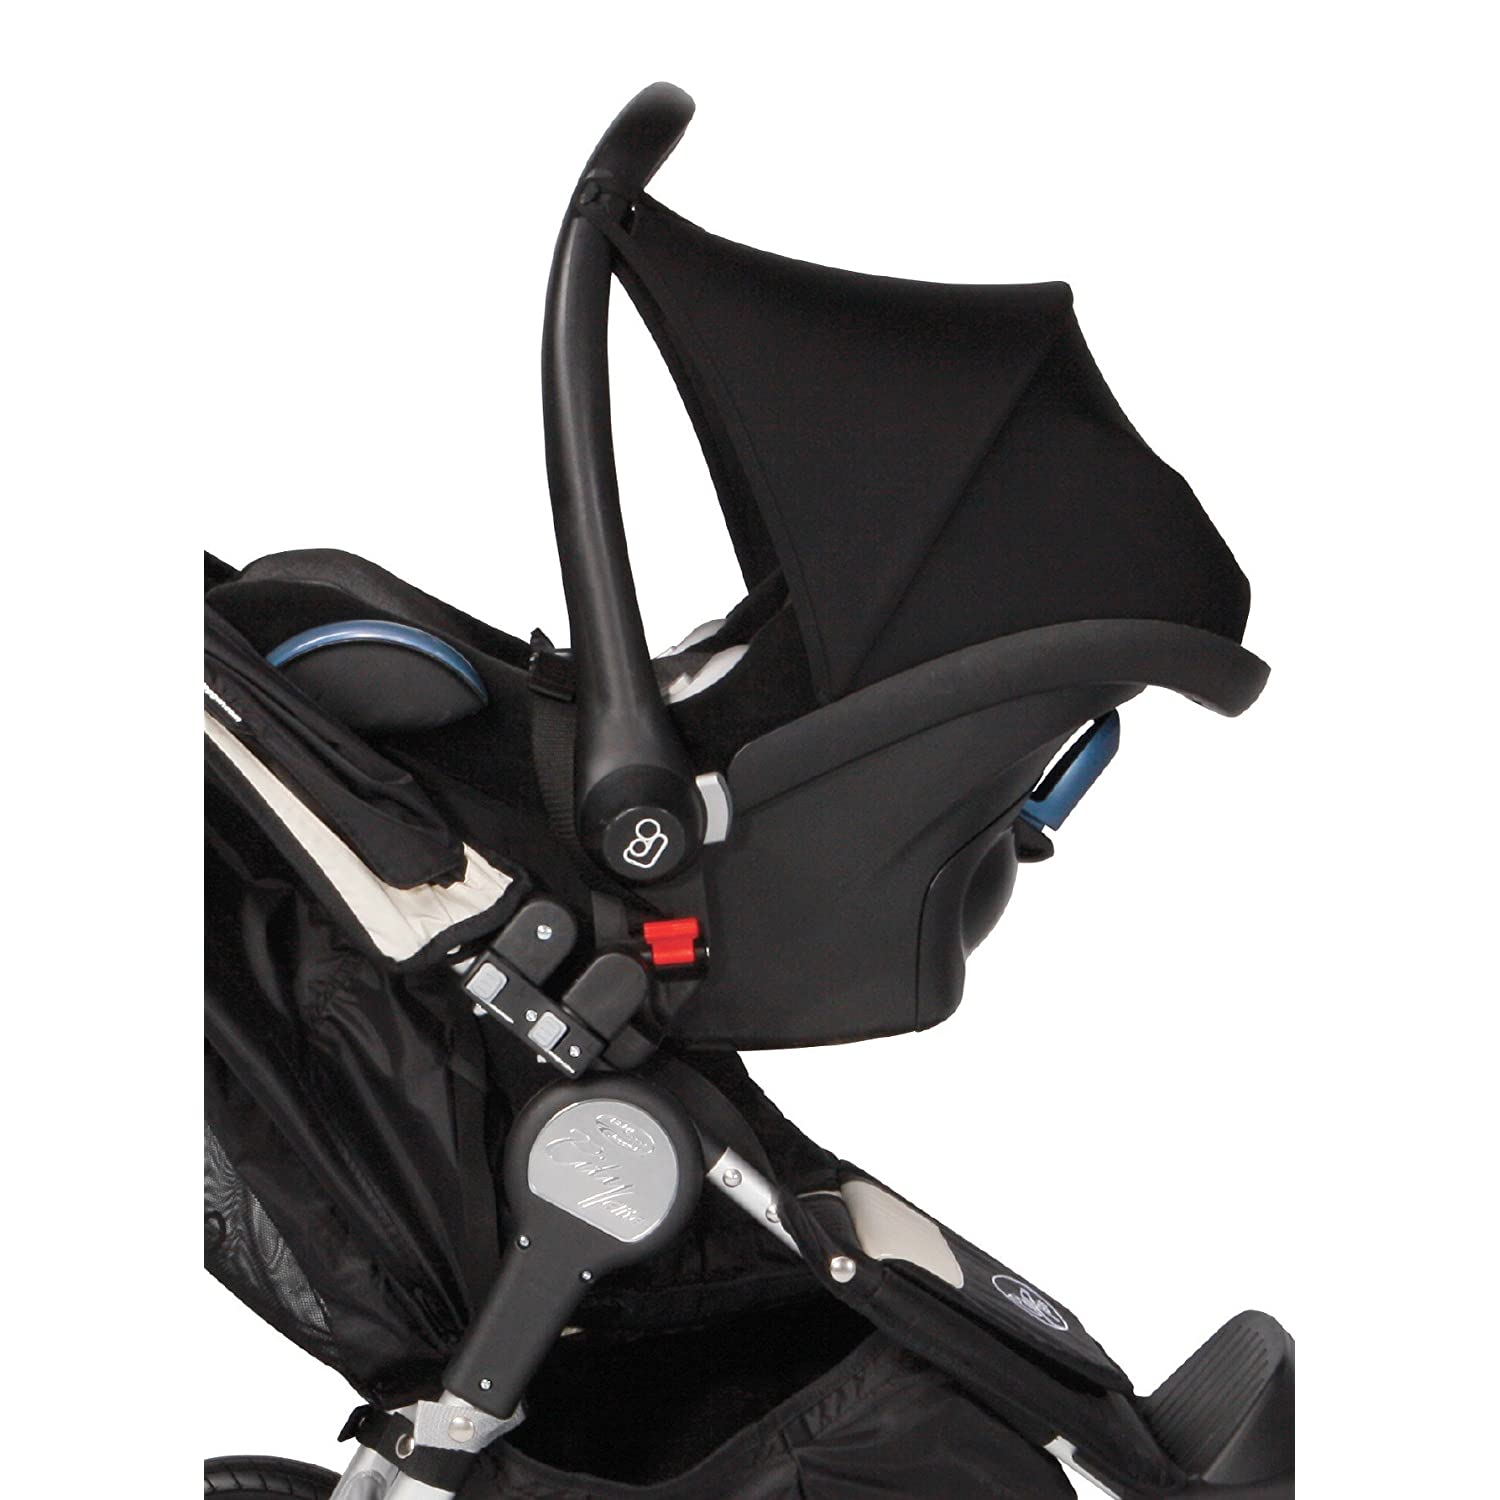 baby jogger single car seat adaptor j7180 new free shipping ebay. Black Bedroom Furniture Sets. Home Design Ideas